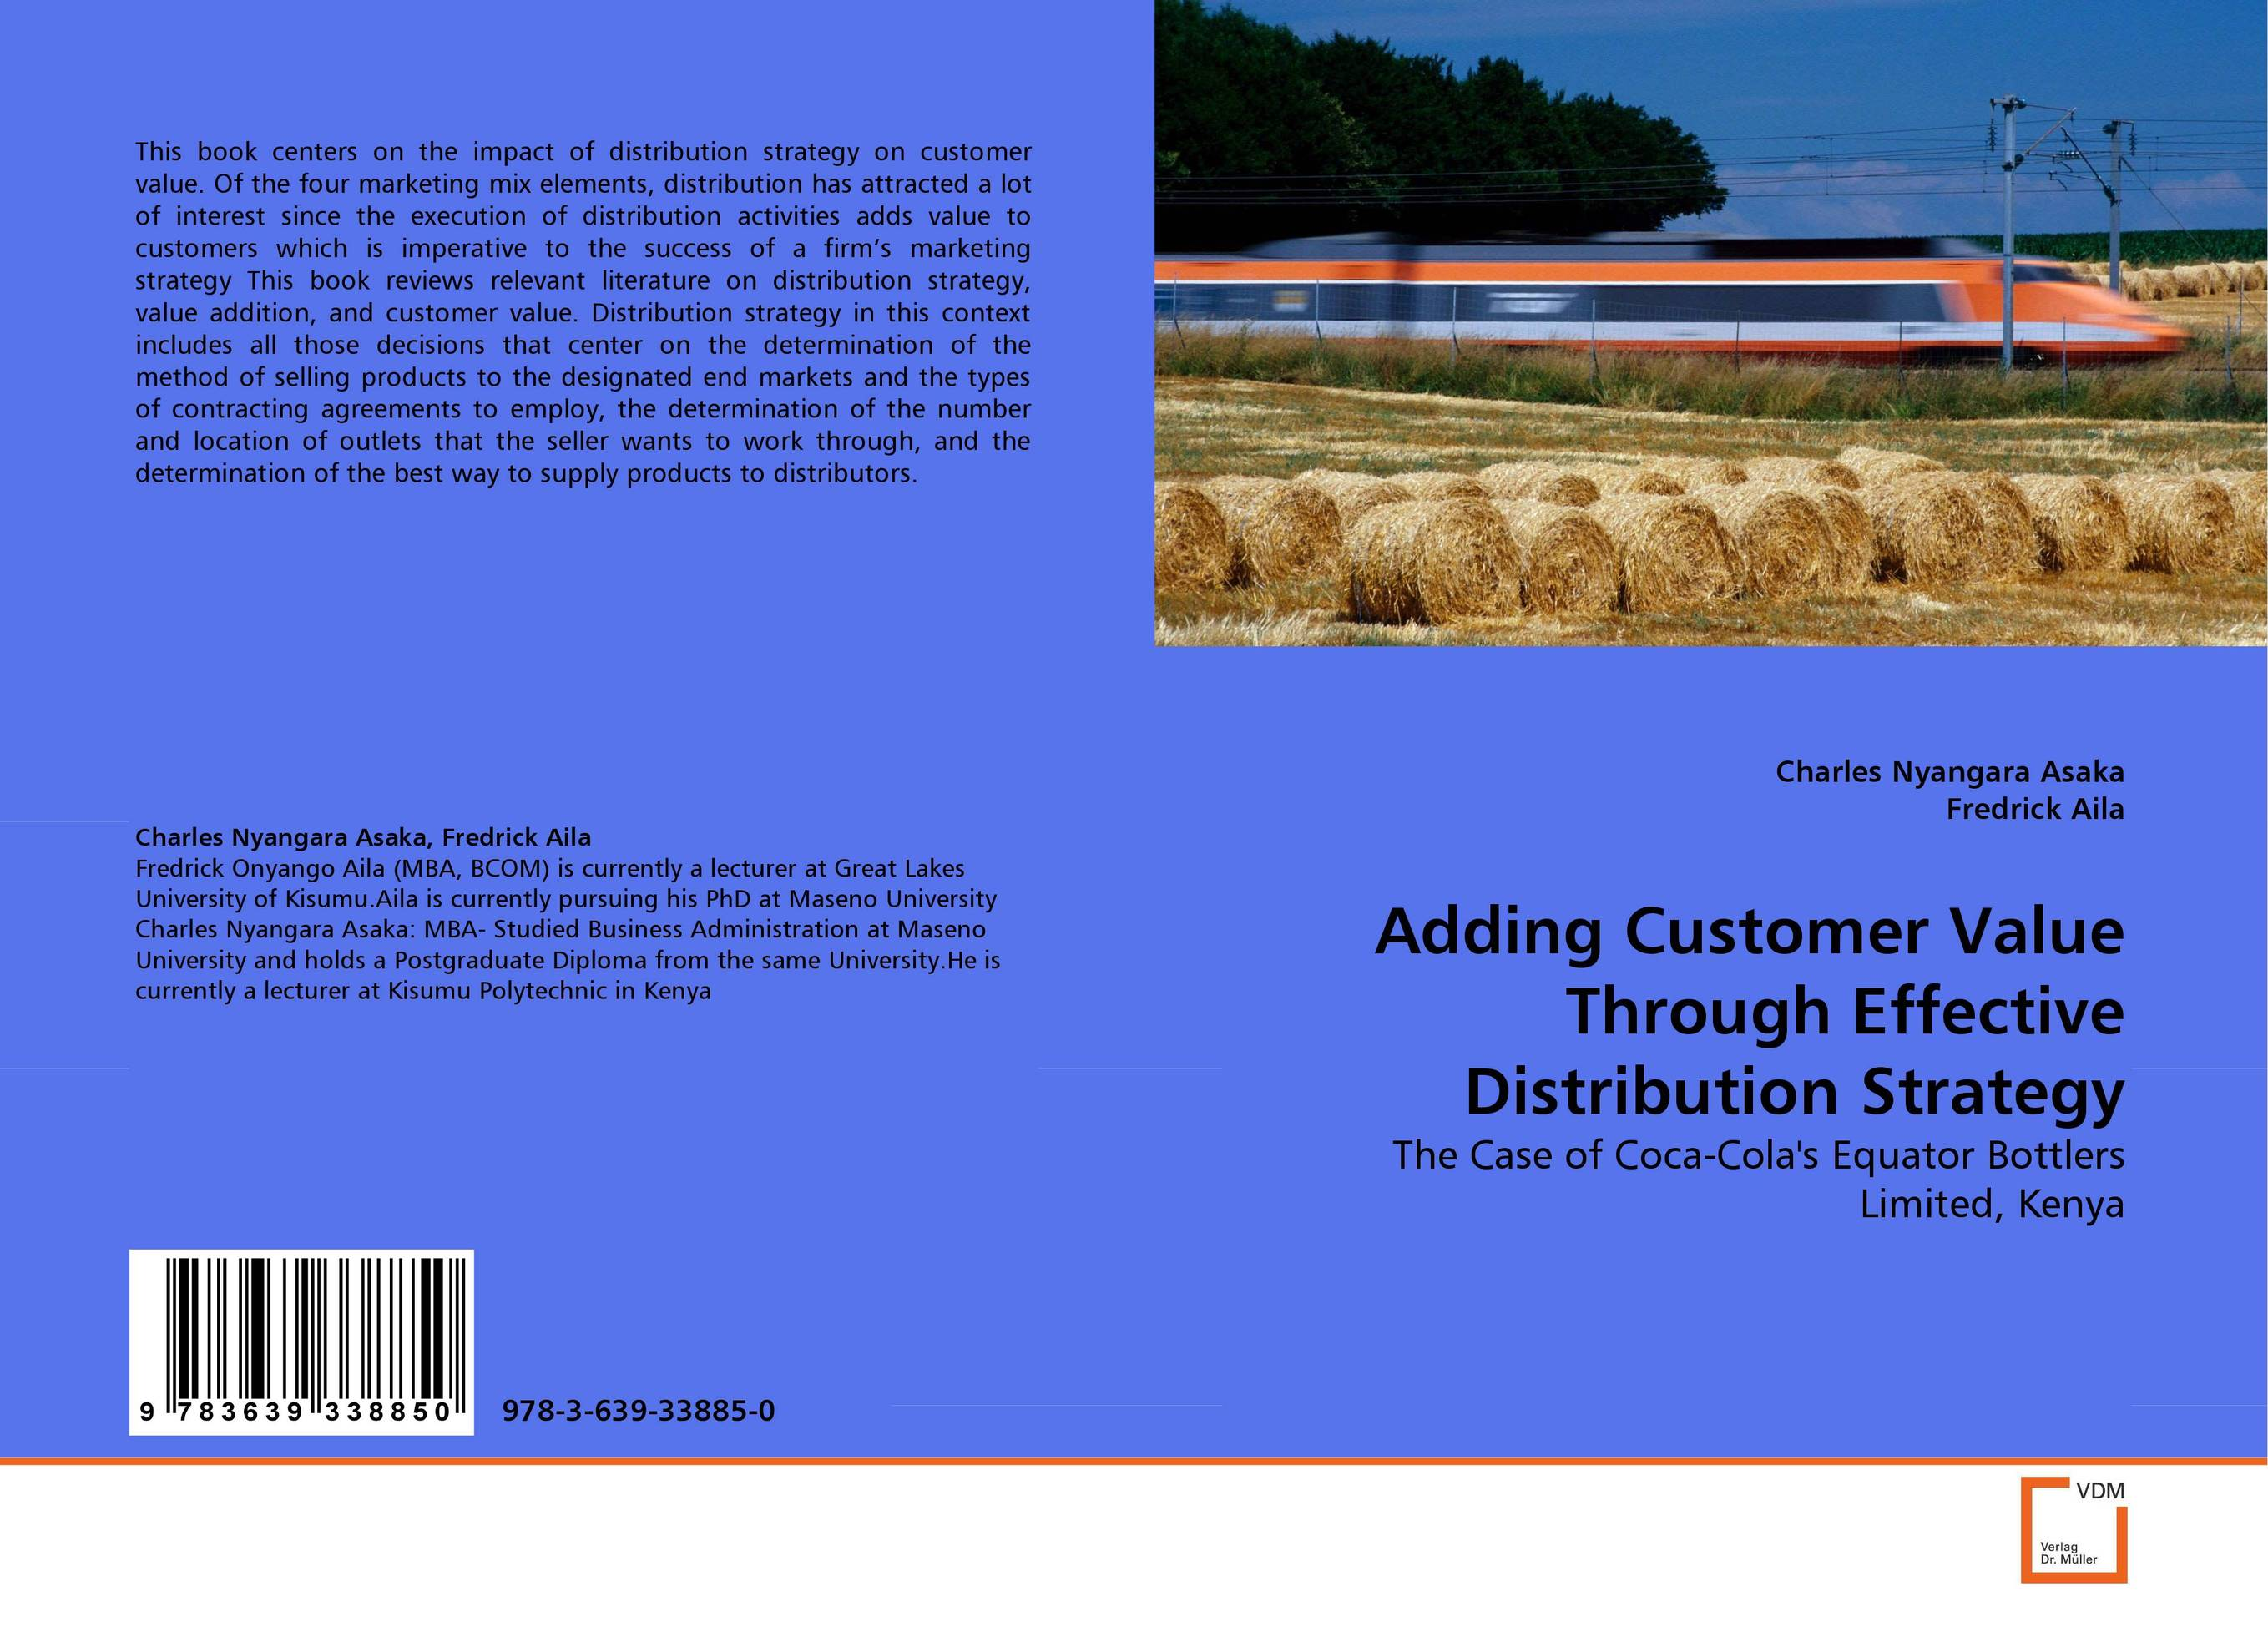 Adding Customer Value Through Effective Distribution Strategy on the distribution of information structures and focal points